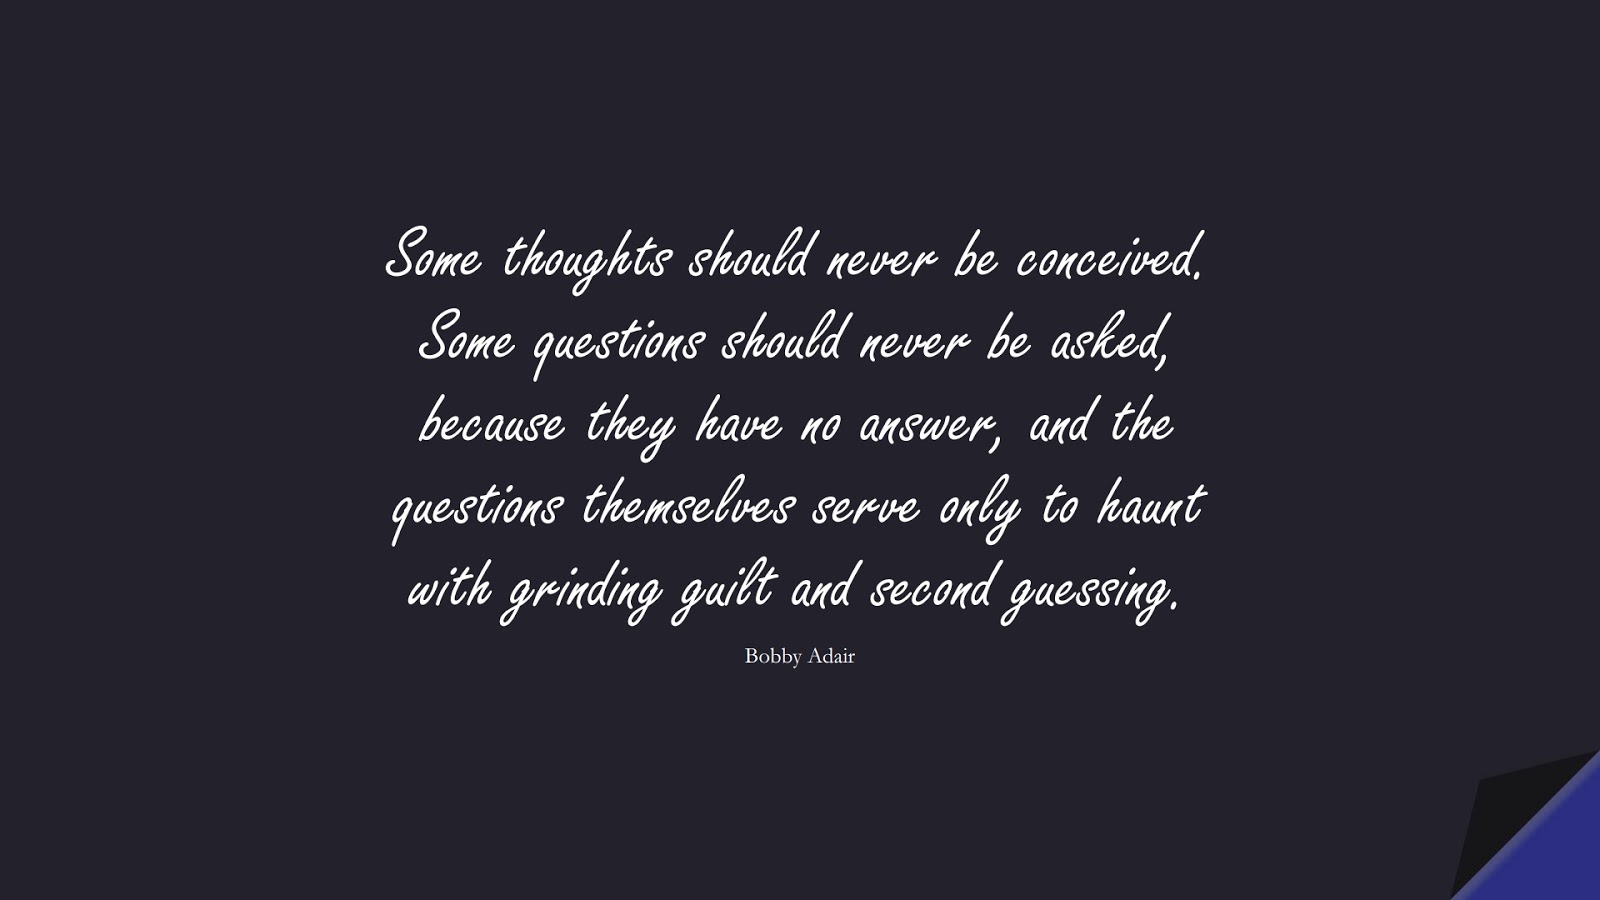 Some thoughts should never be conceived. Some questions should never be asked, because they have no answer, and the questions themselves serve only to haunt with grinding guilt and second guessing. (Bobby Adair);  #OverthinkingQuotes